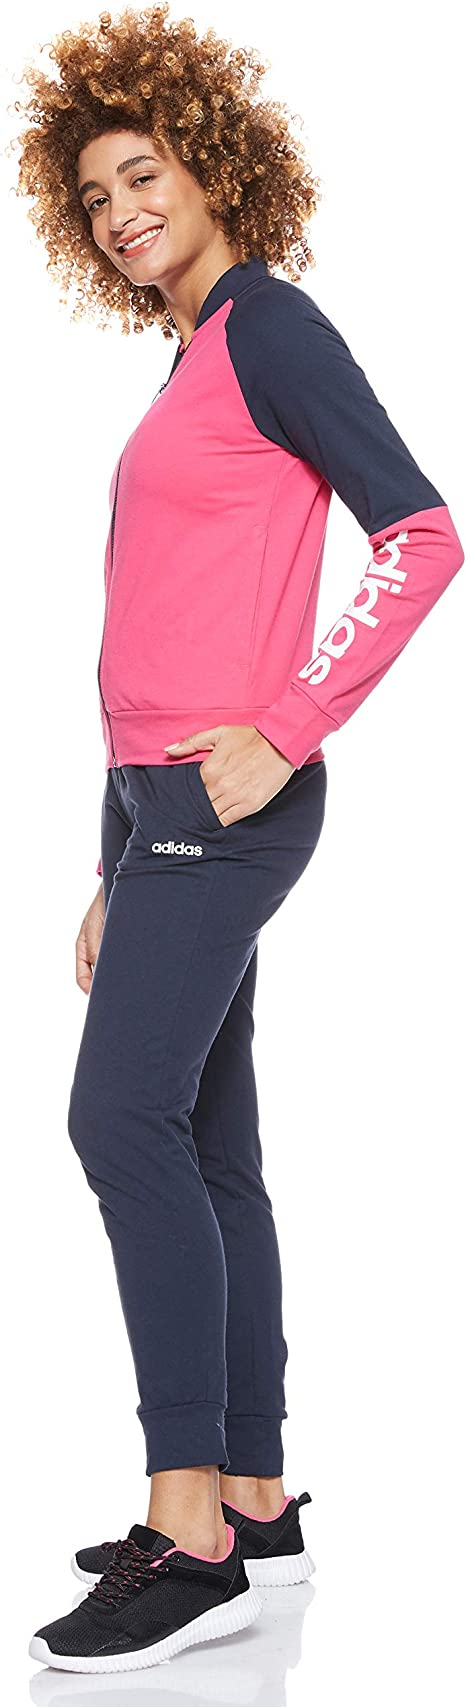 adidas WTS New CO Mark Chándal, Mujer, Magrea/Tinley/Blanco, XS ...